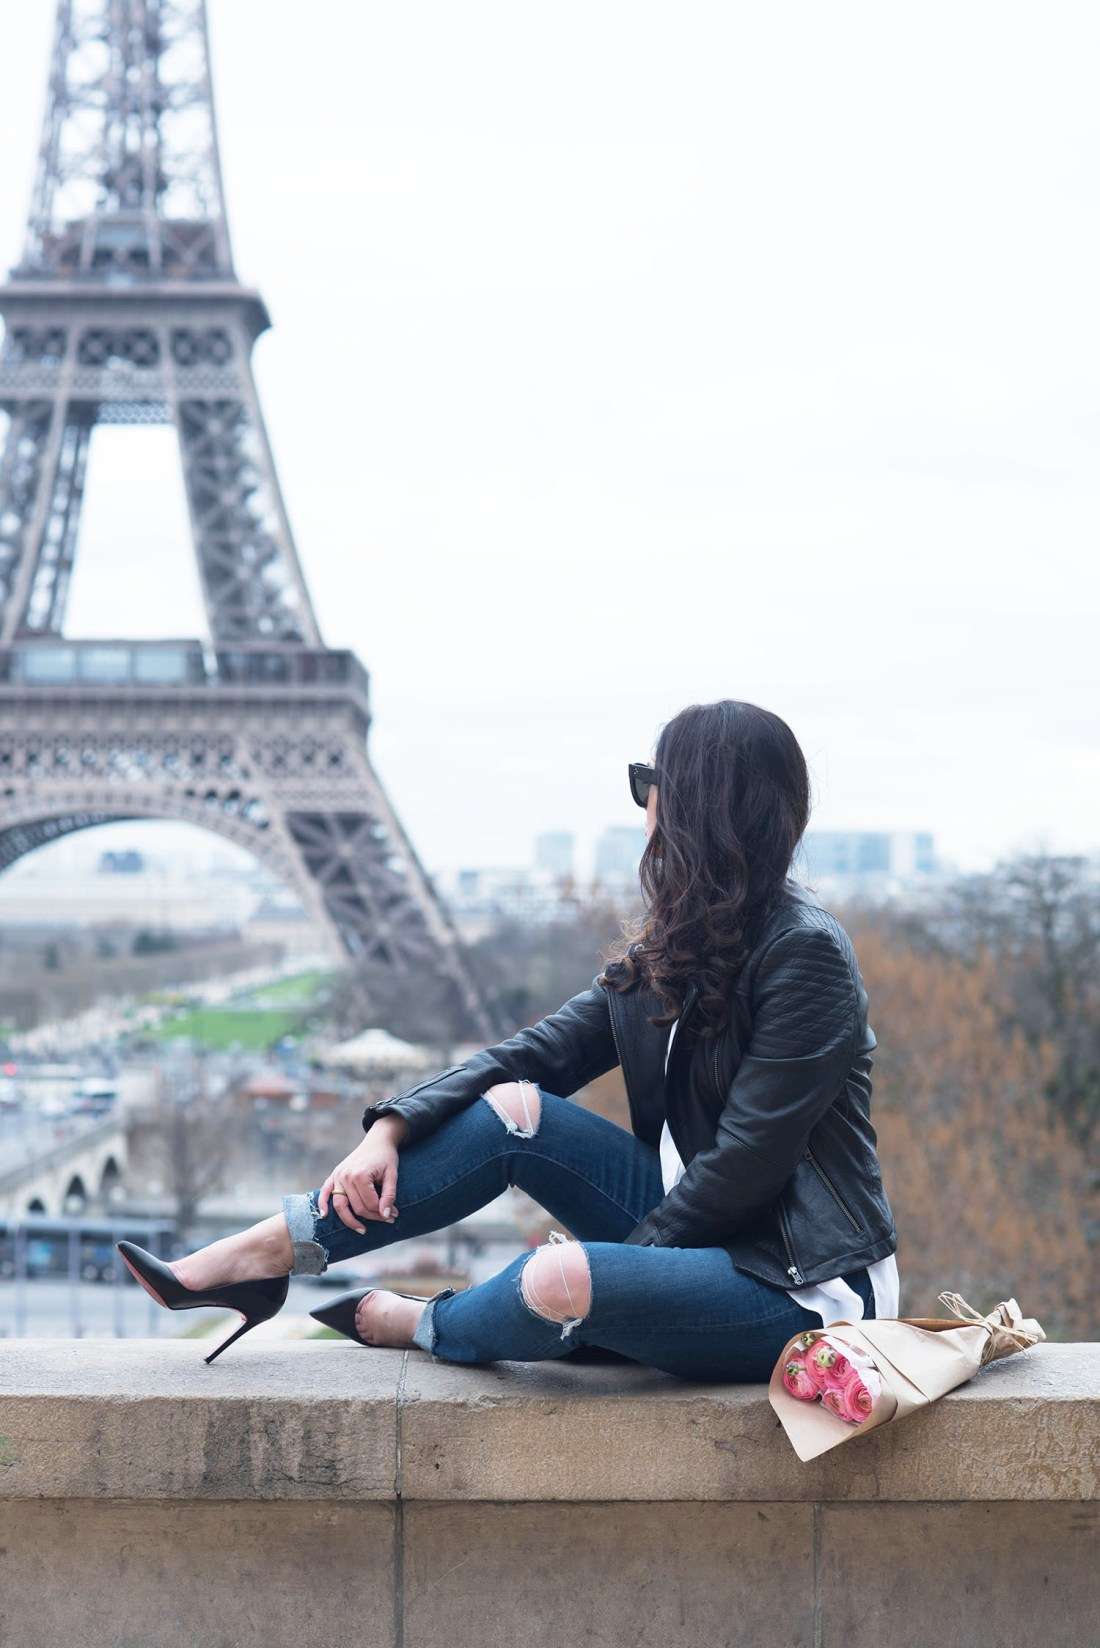 Fashion blogger Cee Fardoe of Coco & Vera sits at Place Trocadero in front of th Eiffel Tower wearing Paige Hoxton jeans and a Cupcakes and Cashmere leather jacket